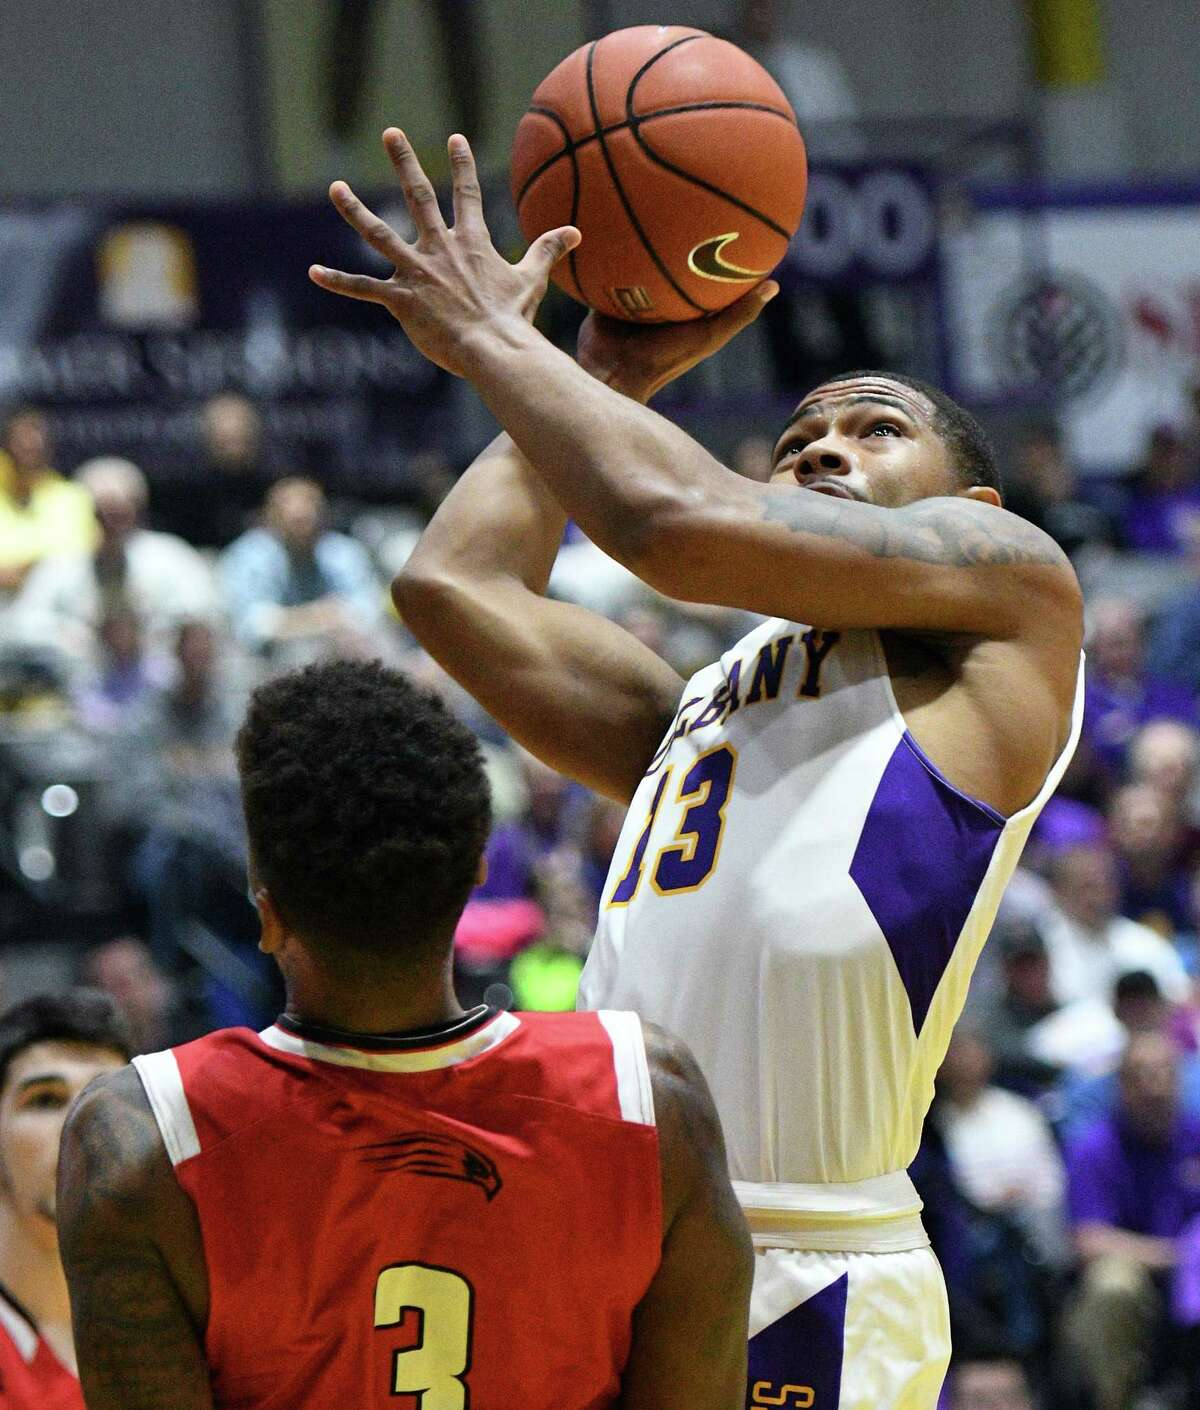 UAlbany's #13 David Nichols gets a shot off past Hartford defender Jalen Ross during the first round game of the America East Conference Tournament Wednesday March 1, 2017 in Albany, NY. (John Carl D'Annibale / Times Union)